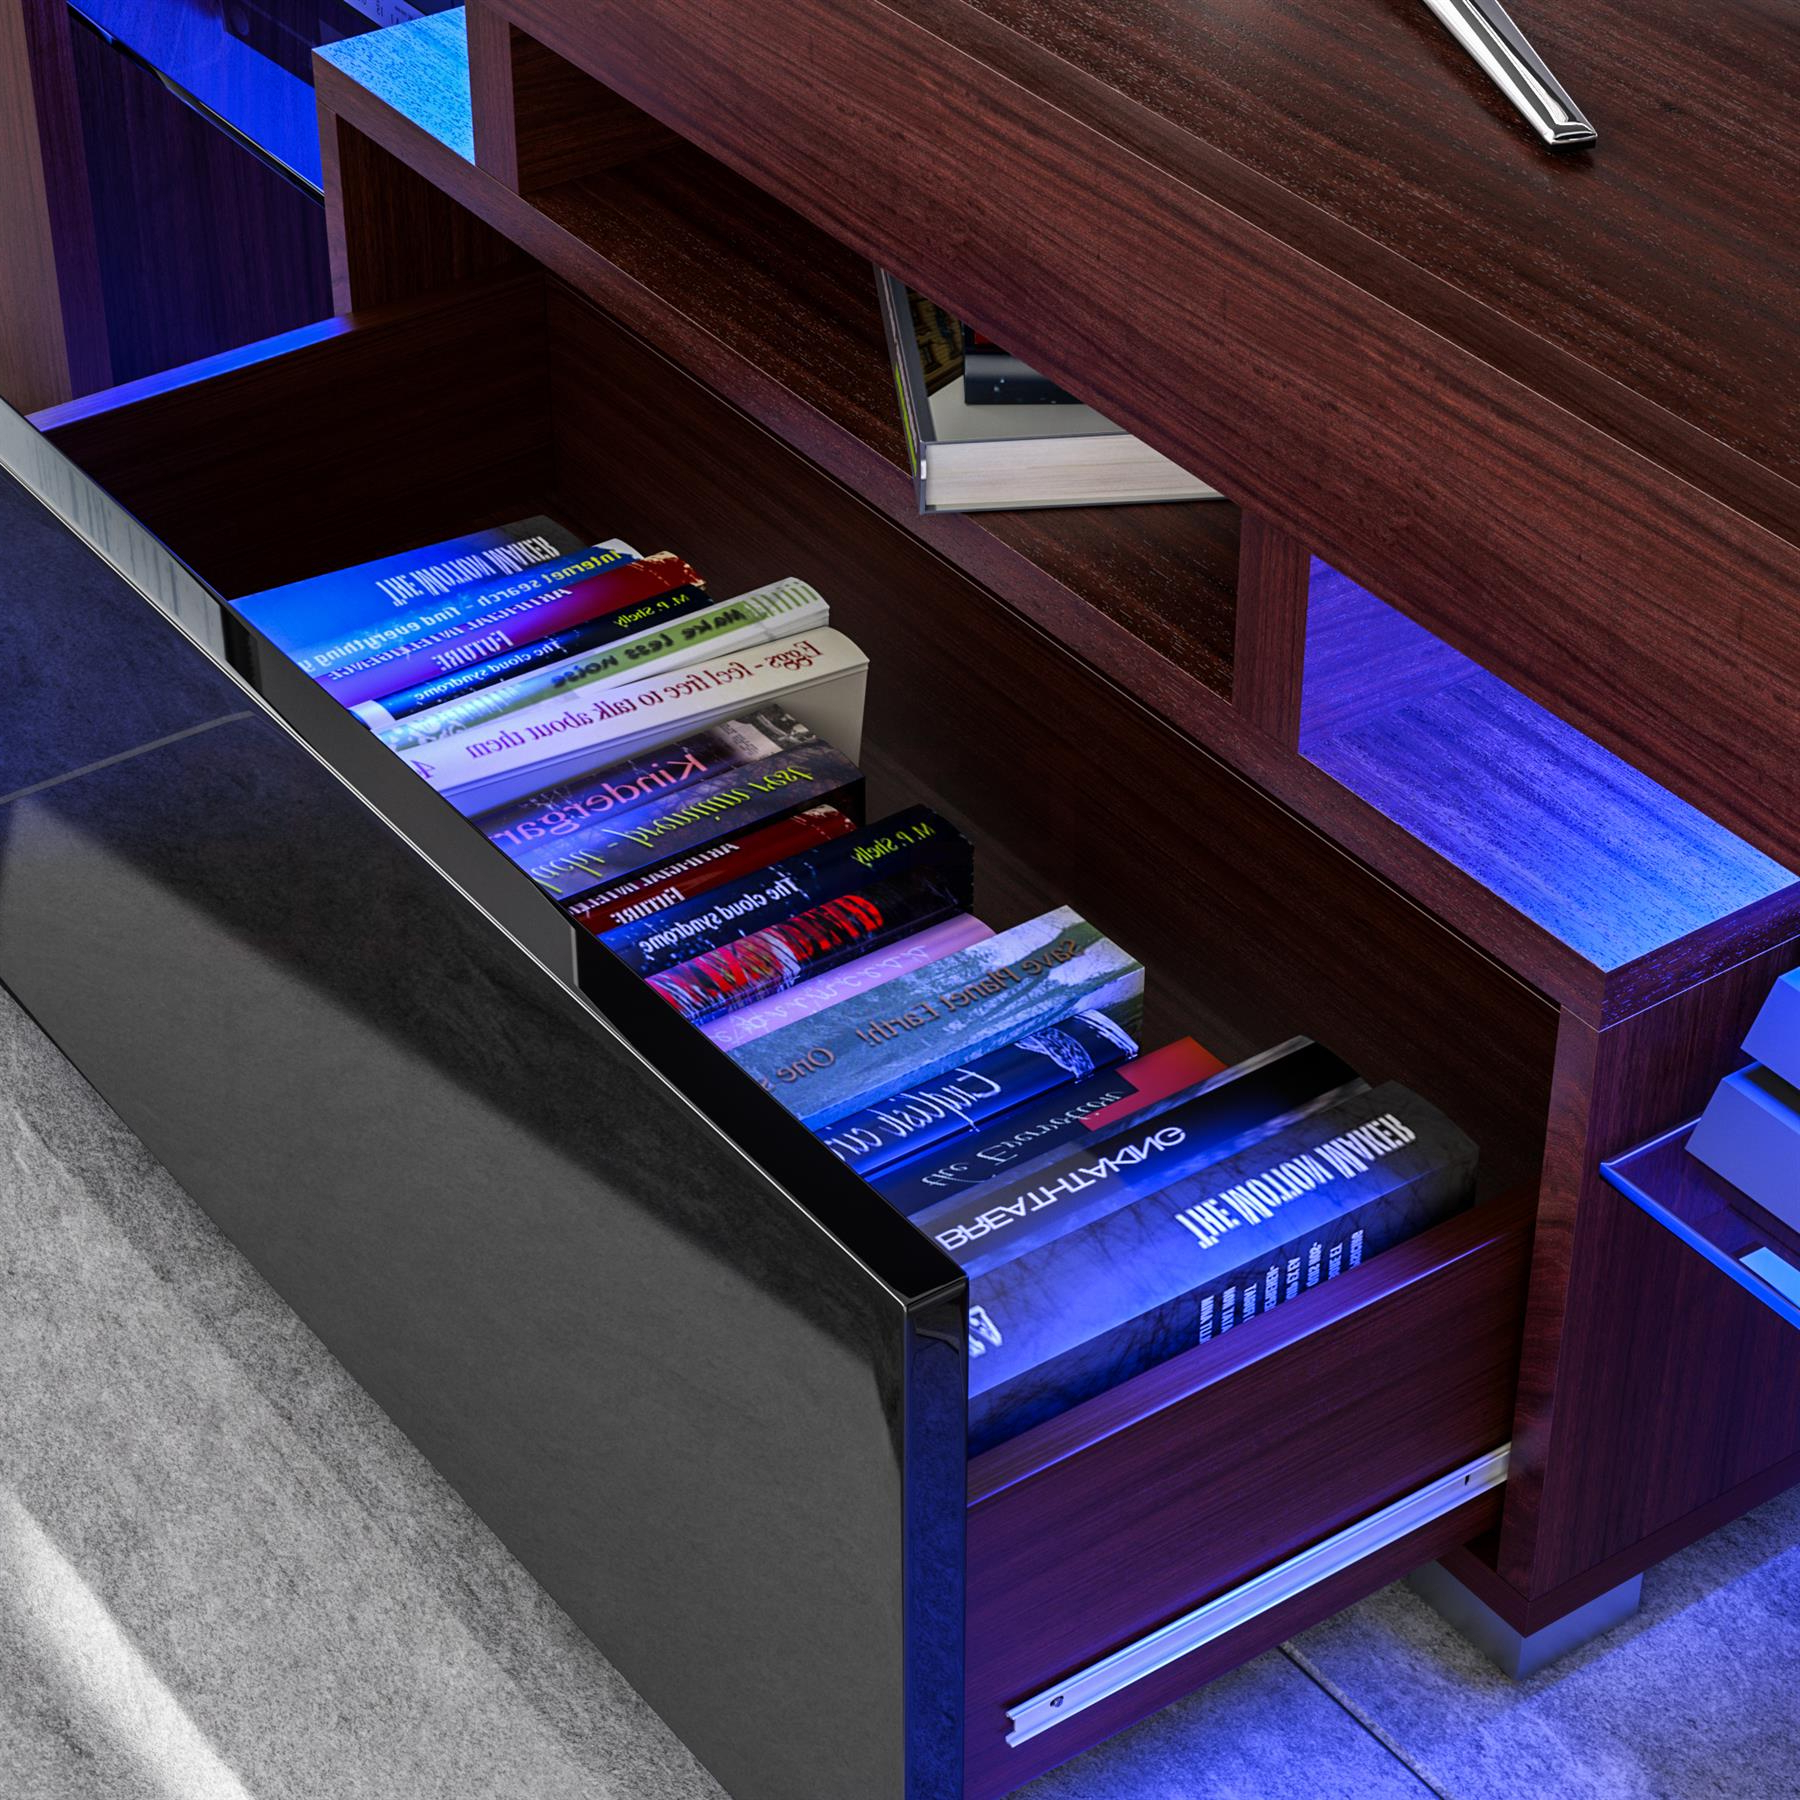 Luna Led Tv Stand Cabinet Unit 1 Drawer Modern Regarding Famous Zimtown Modern Tv Stands High Gloss Media Console Cabinet With Led Shelf And Drawers (View 9 of 10)